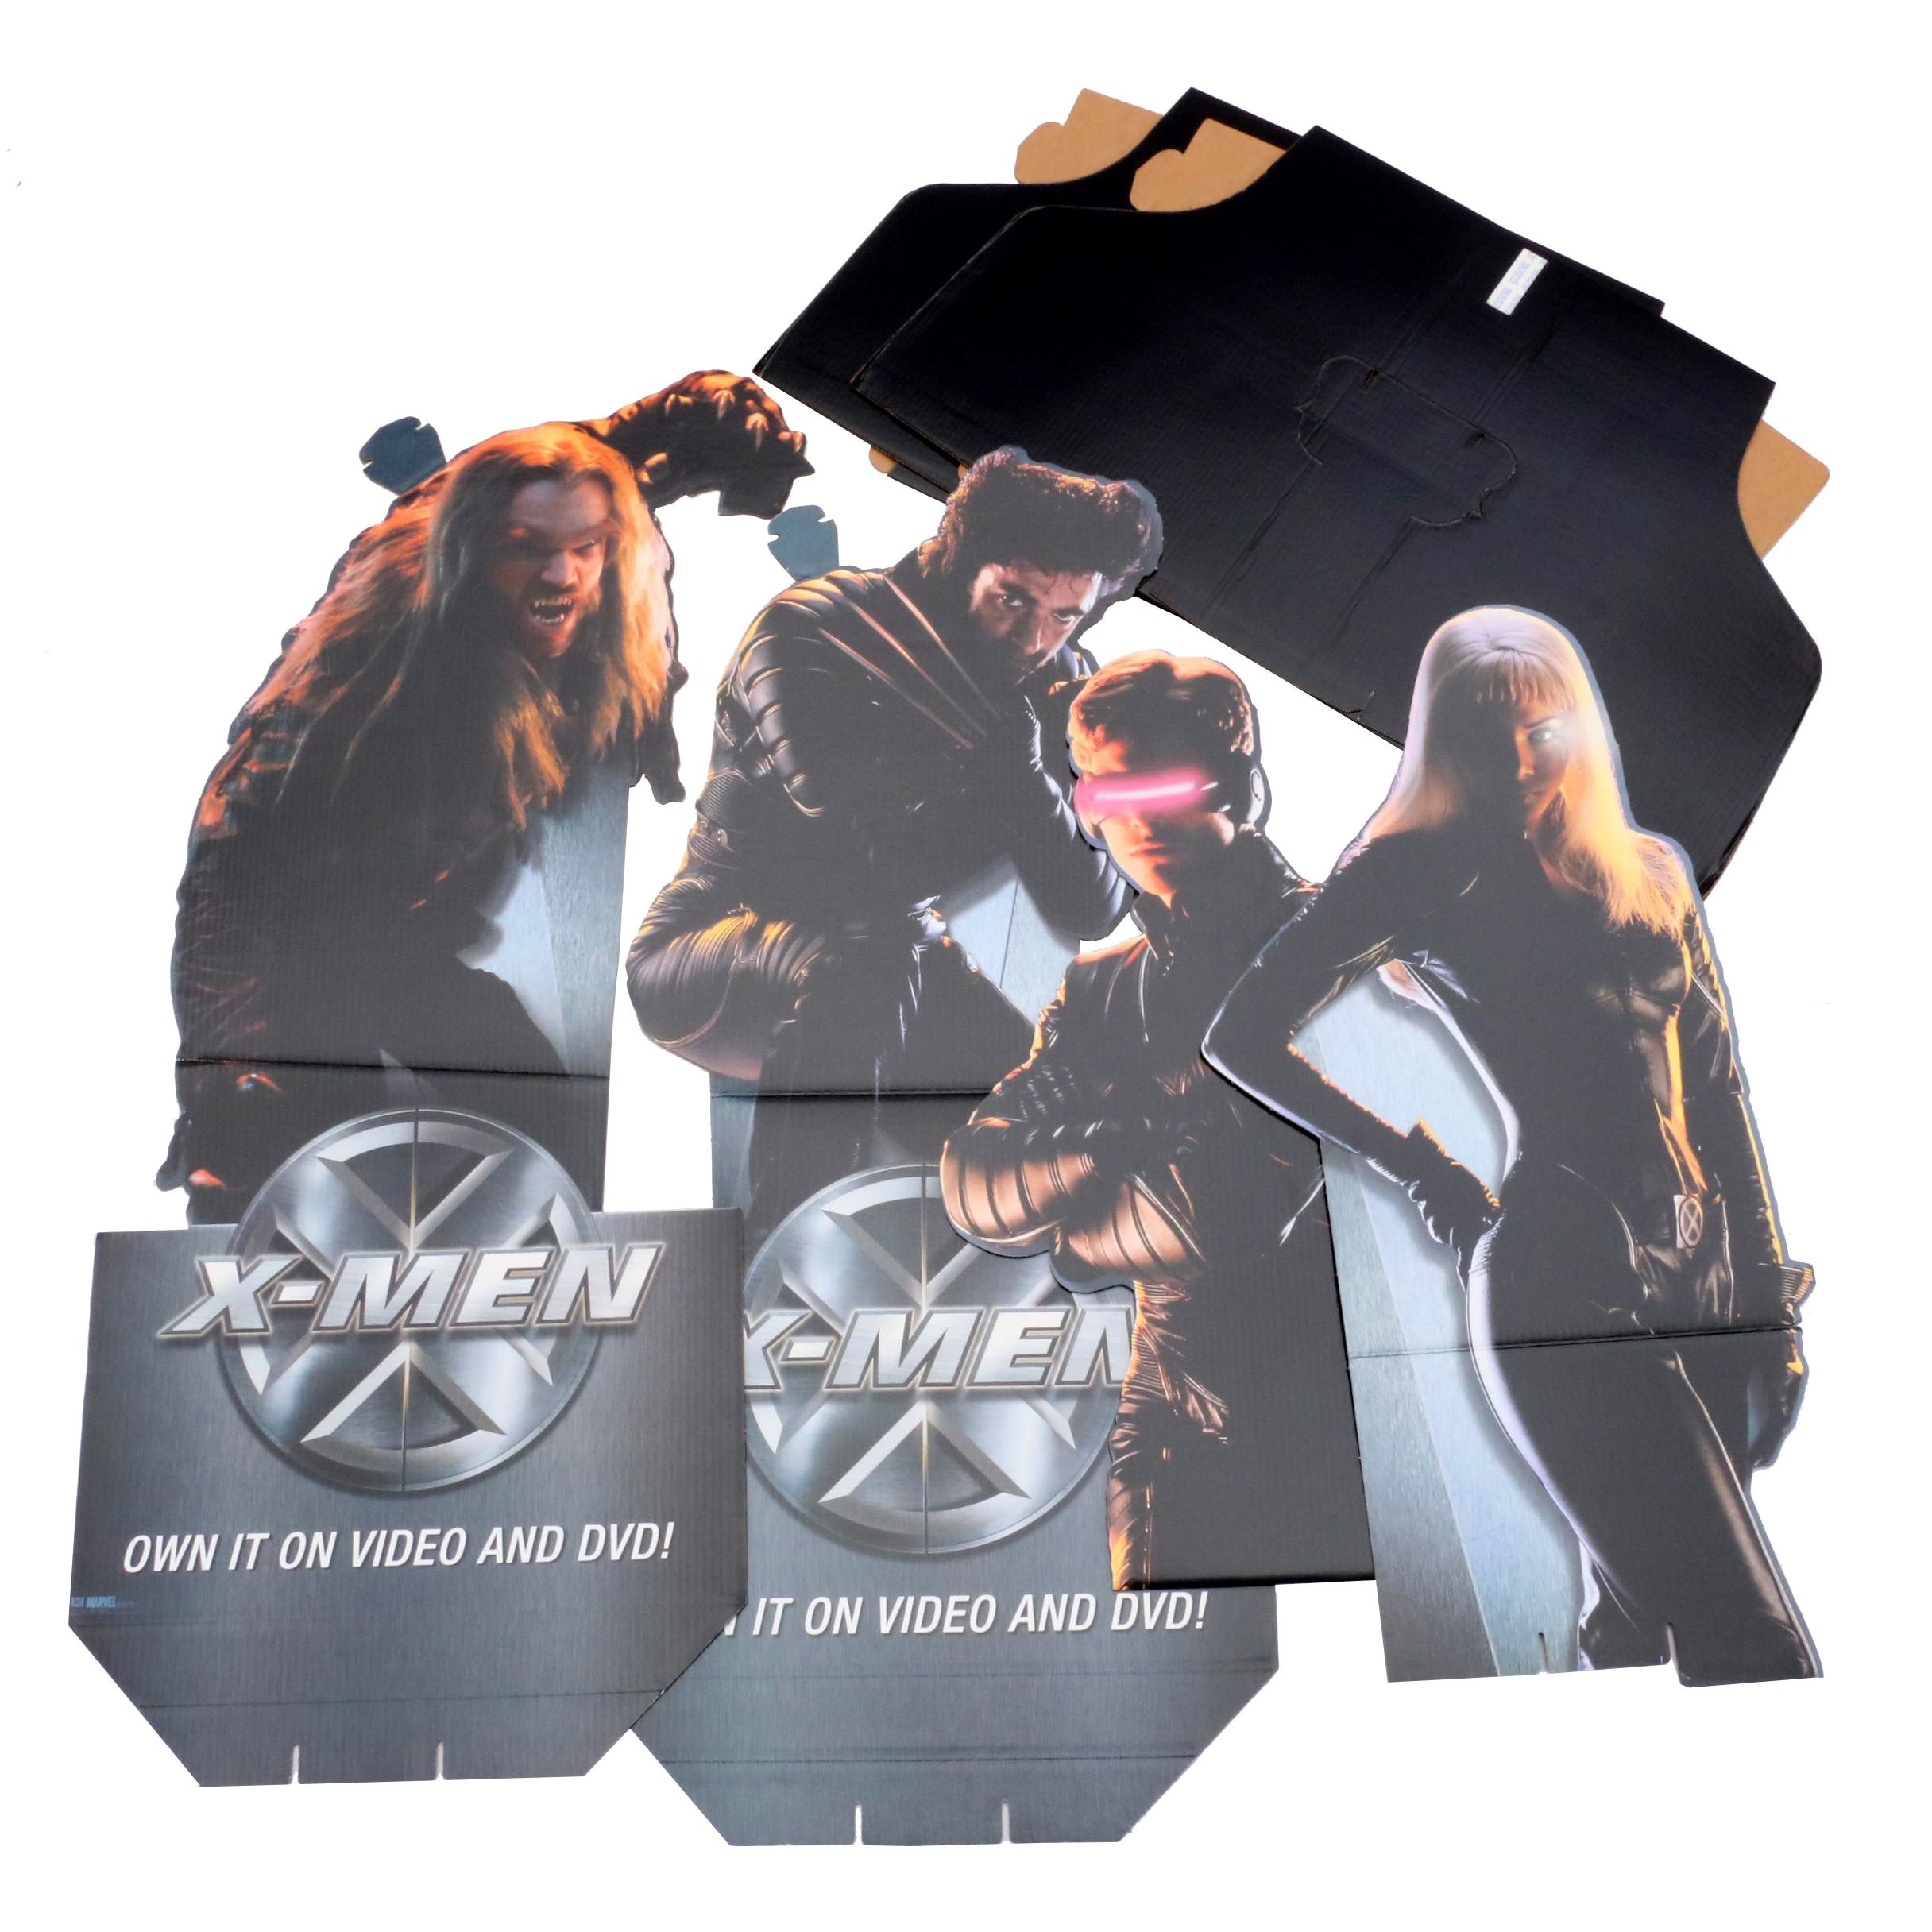 X-Men Cardboard Standees - Storm, Wolverine, Sabertooth, and Cyclops